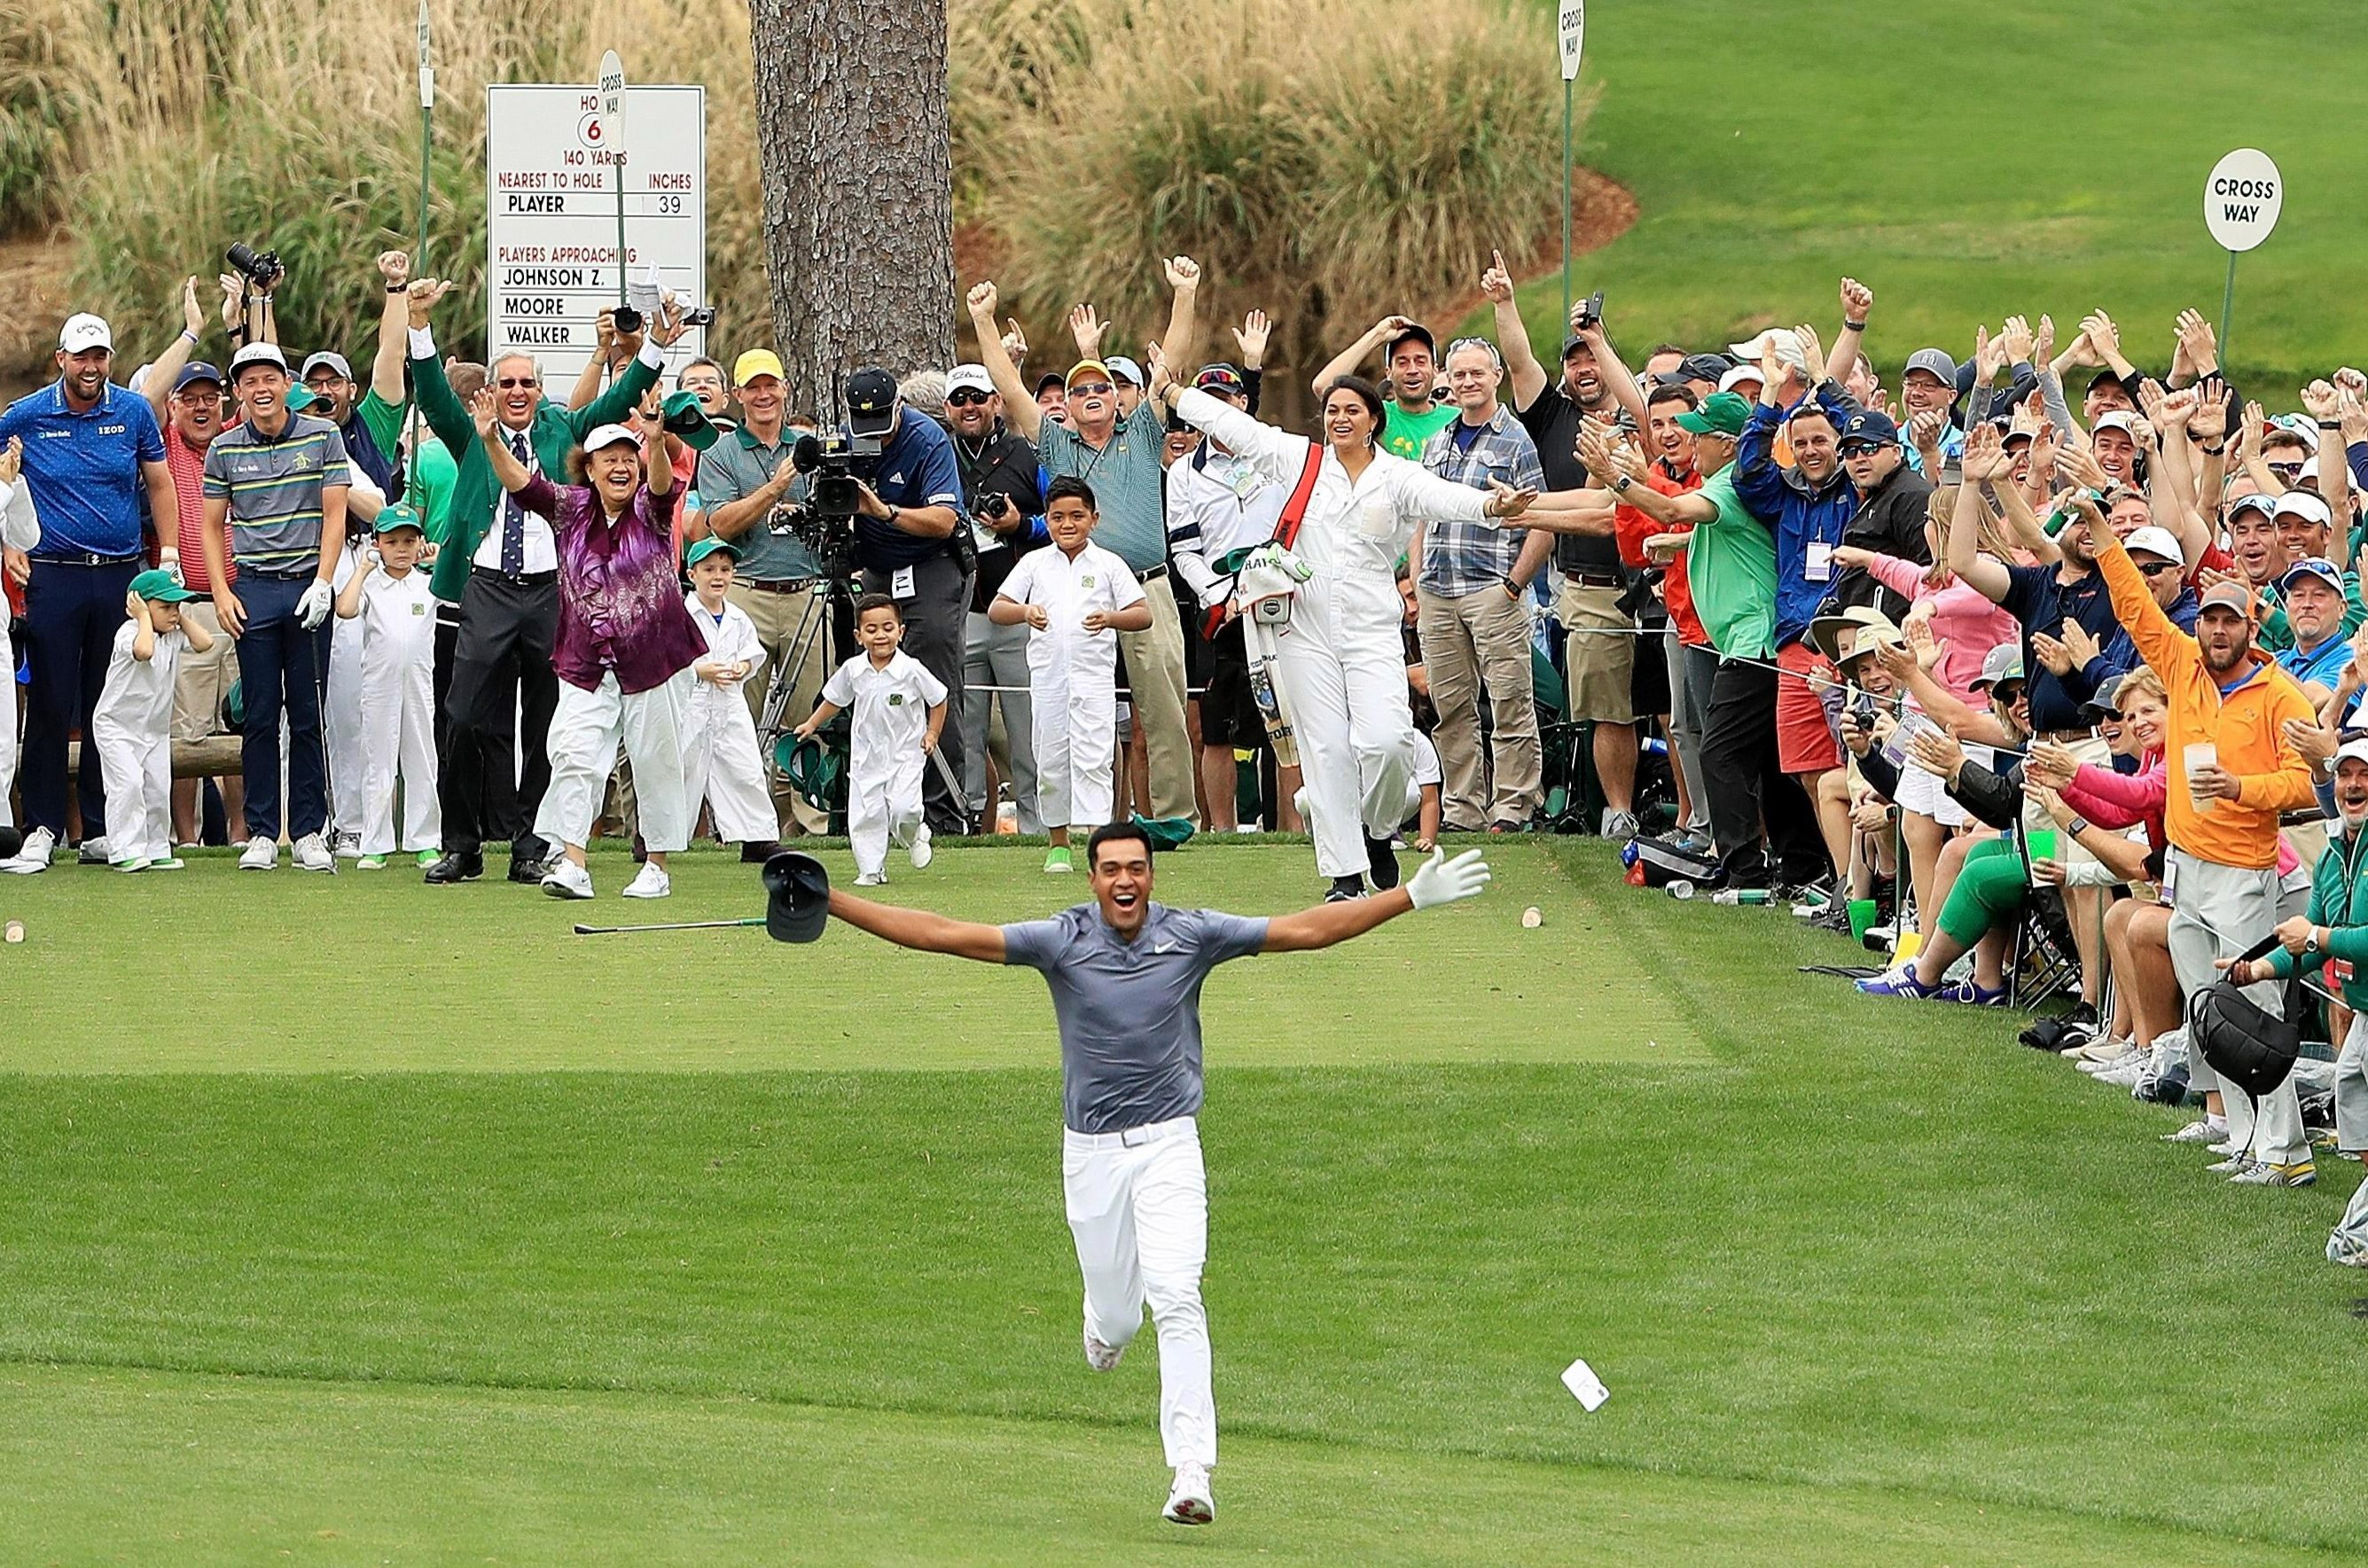 Tony Finau dashed down the fairway lapping up the applause after his ace on the seventh in the Masters Par Three tournament